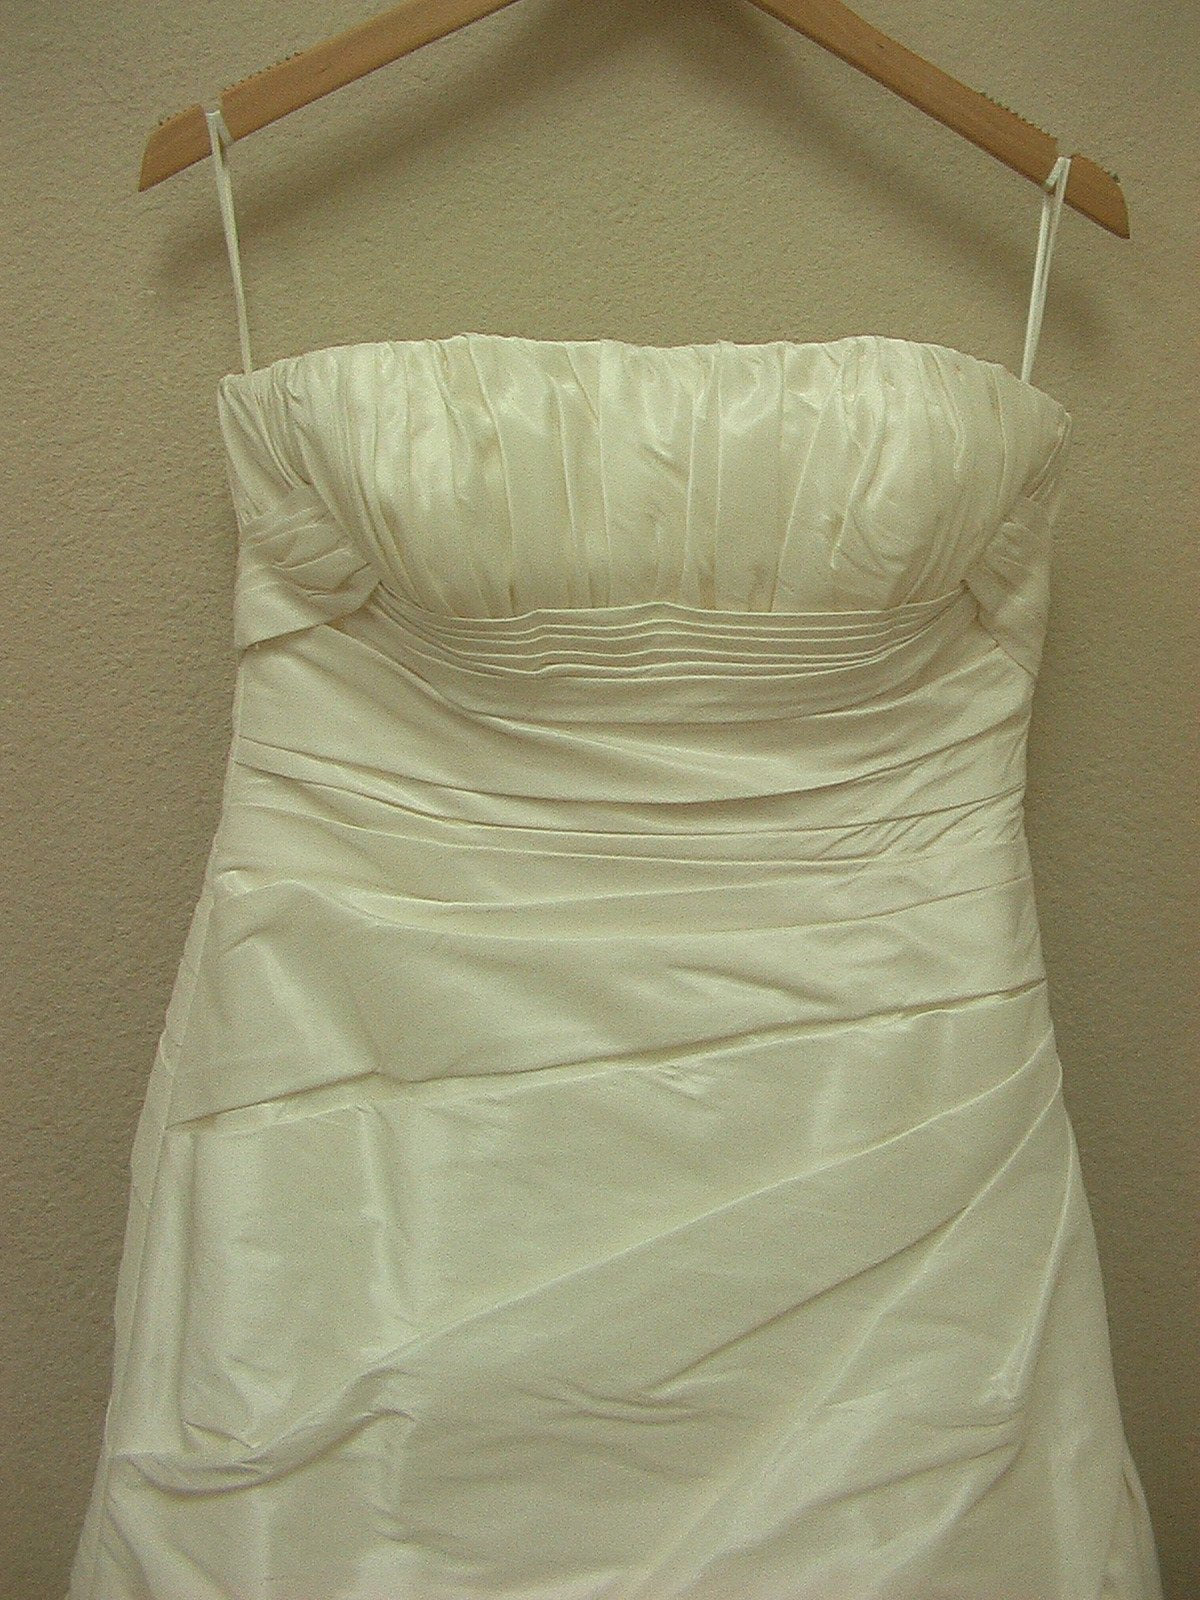 White One 3053 by Pronovias Off White size 10 In Stock Wedding Dress - Tom's Bridal